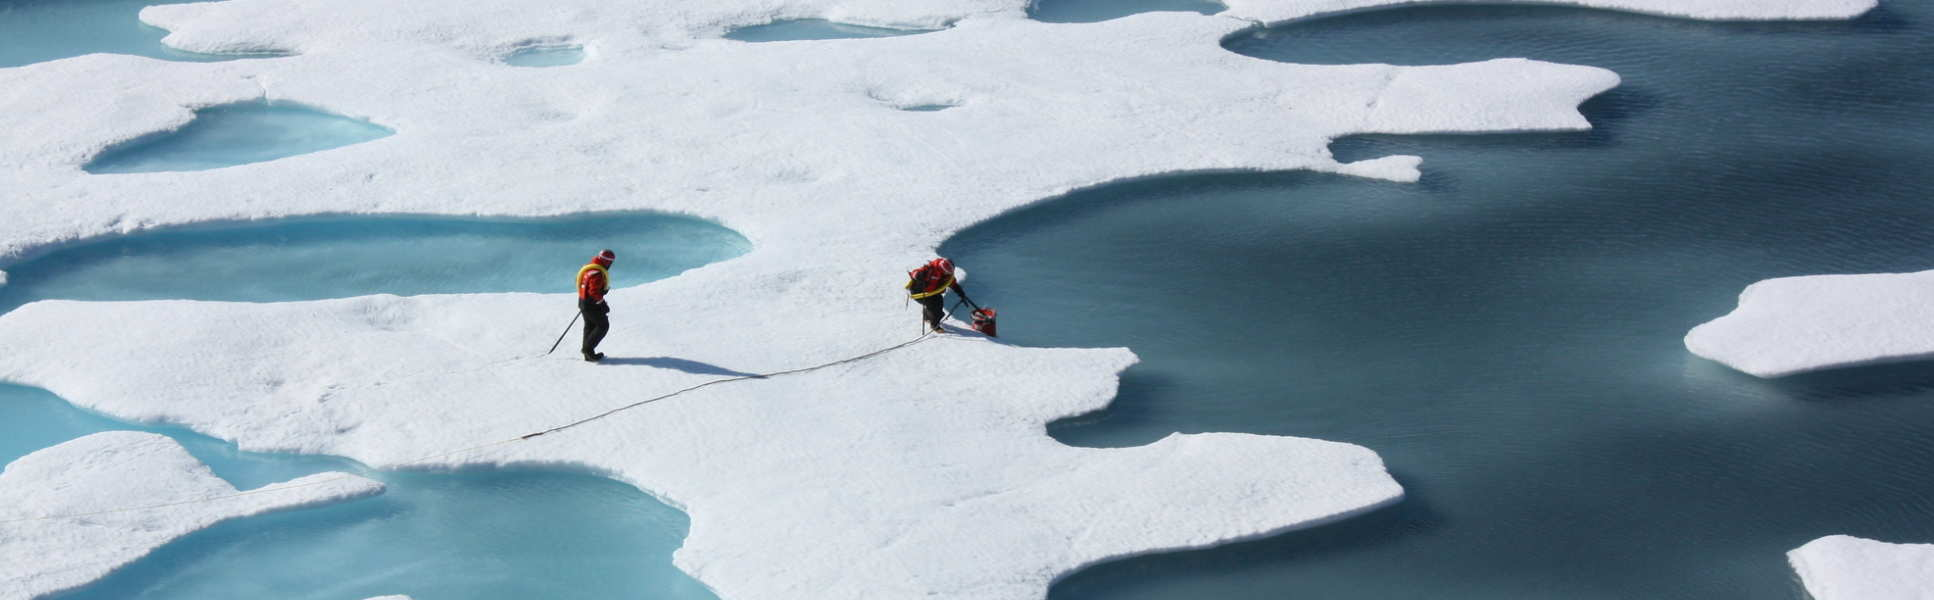 Crew from the U.S. Coast Guard Cutter Healy on ice surrounded by water, retrieving a canister